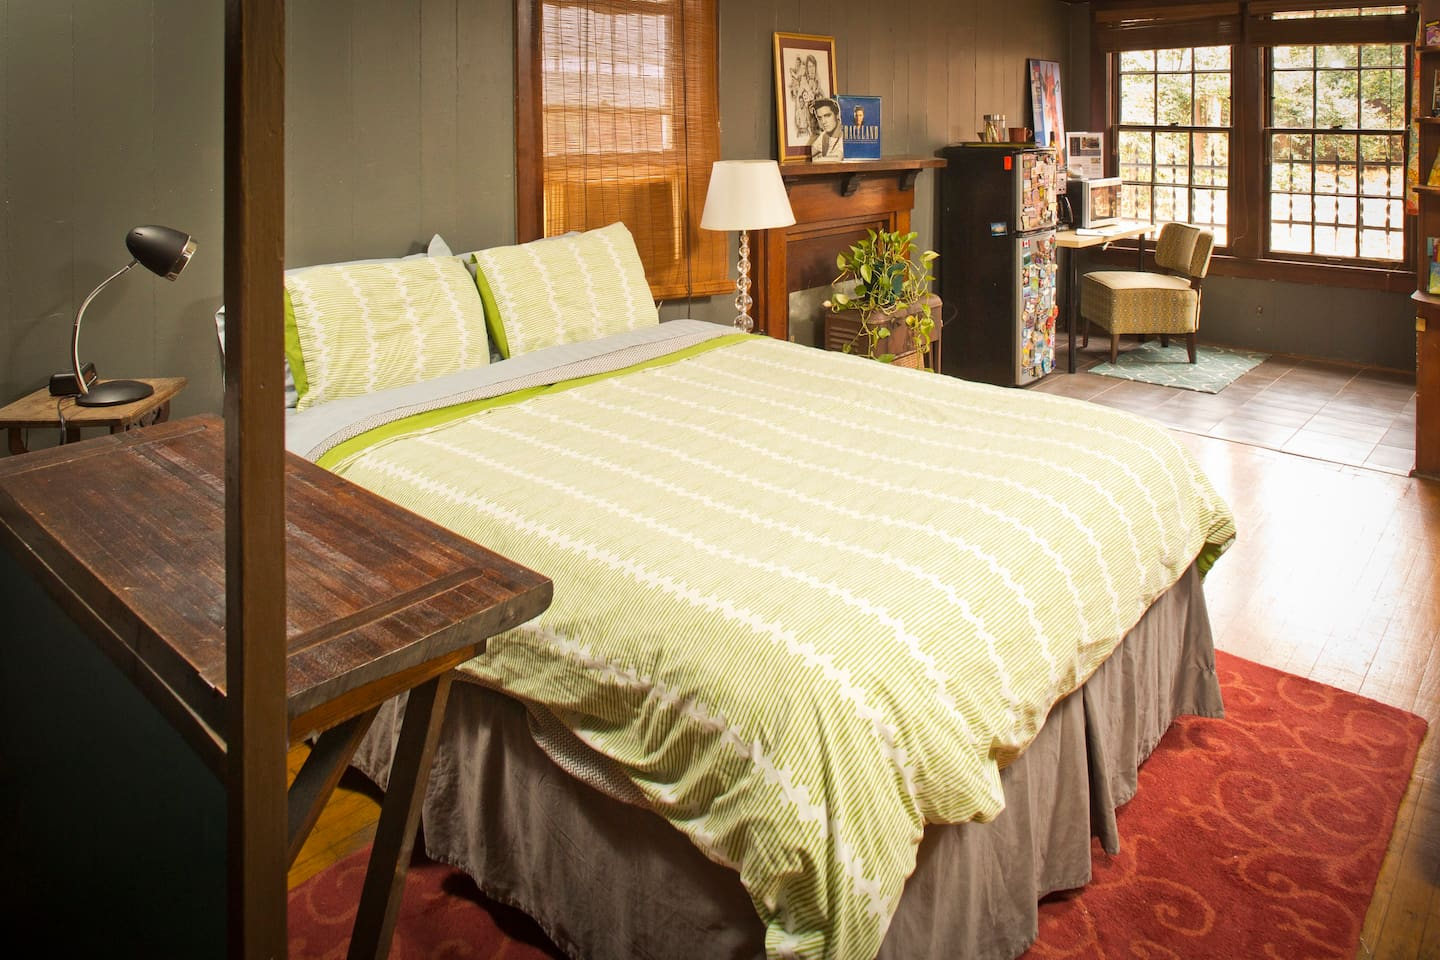 A comfy, queen size bed will pull you in for a comfortable nights sleep.